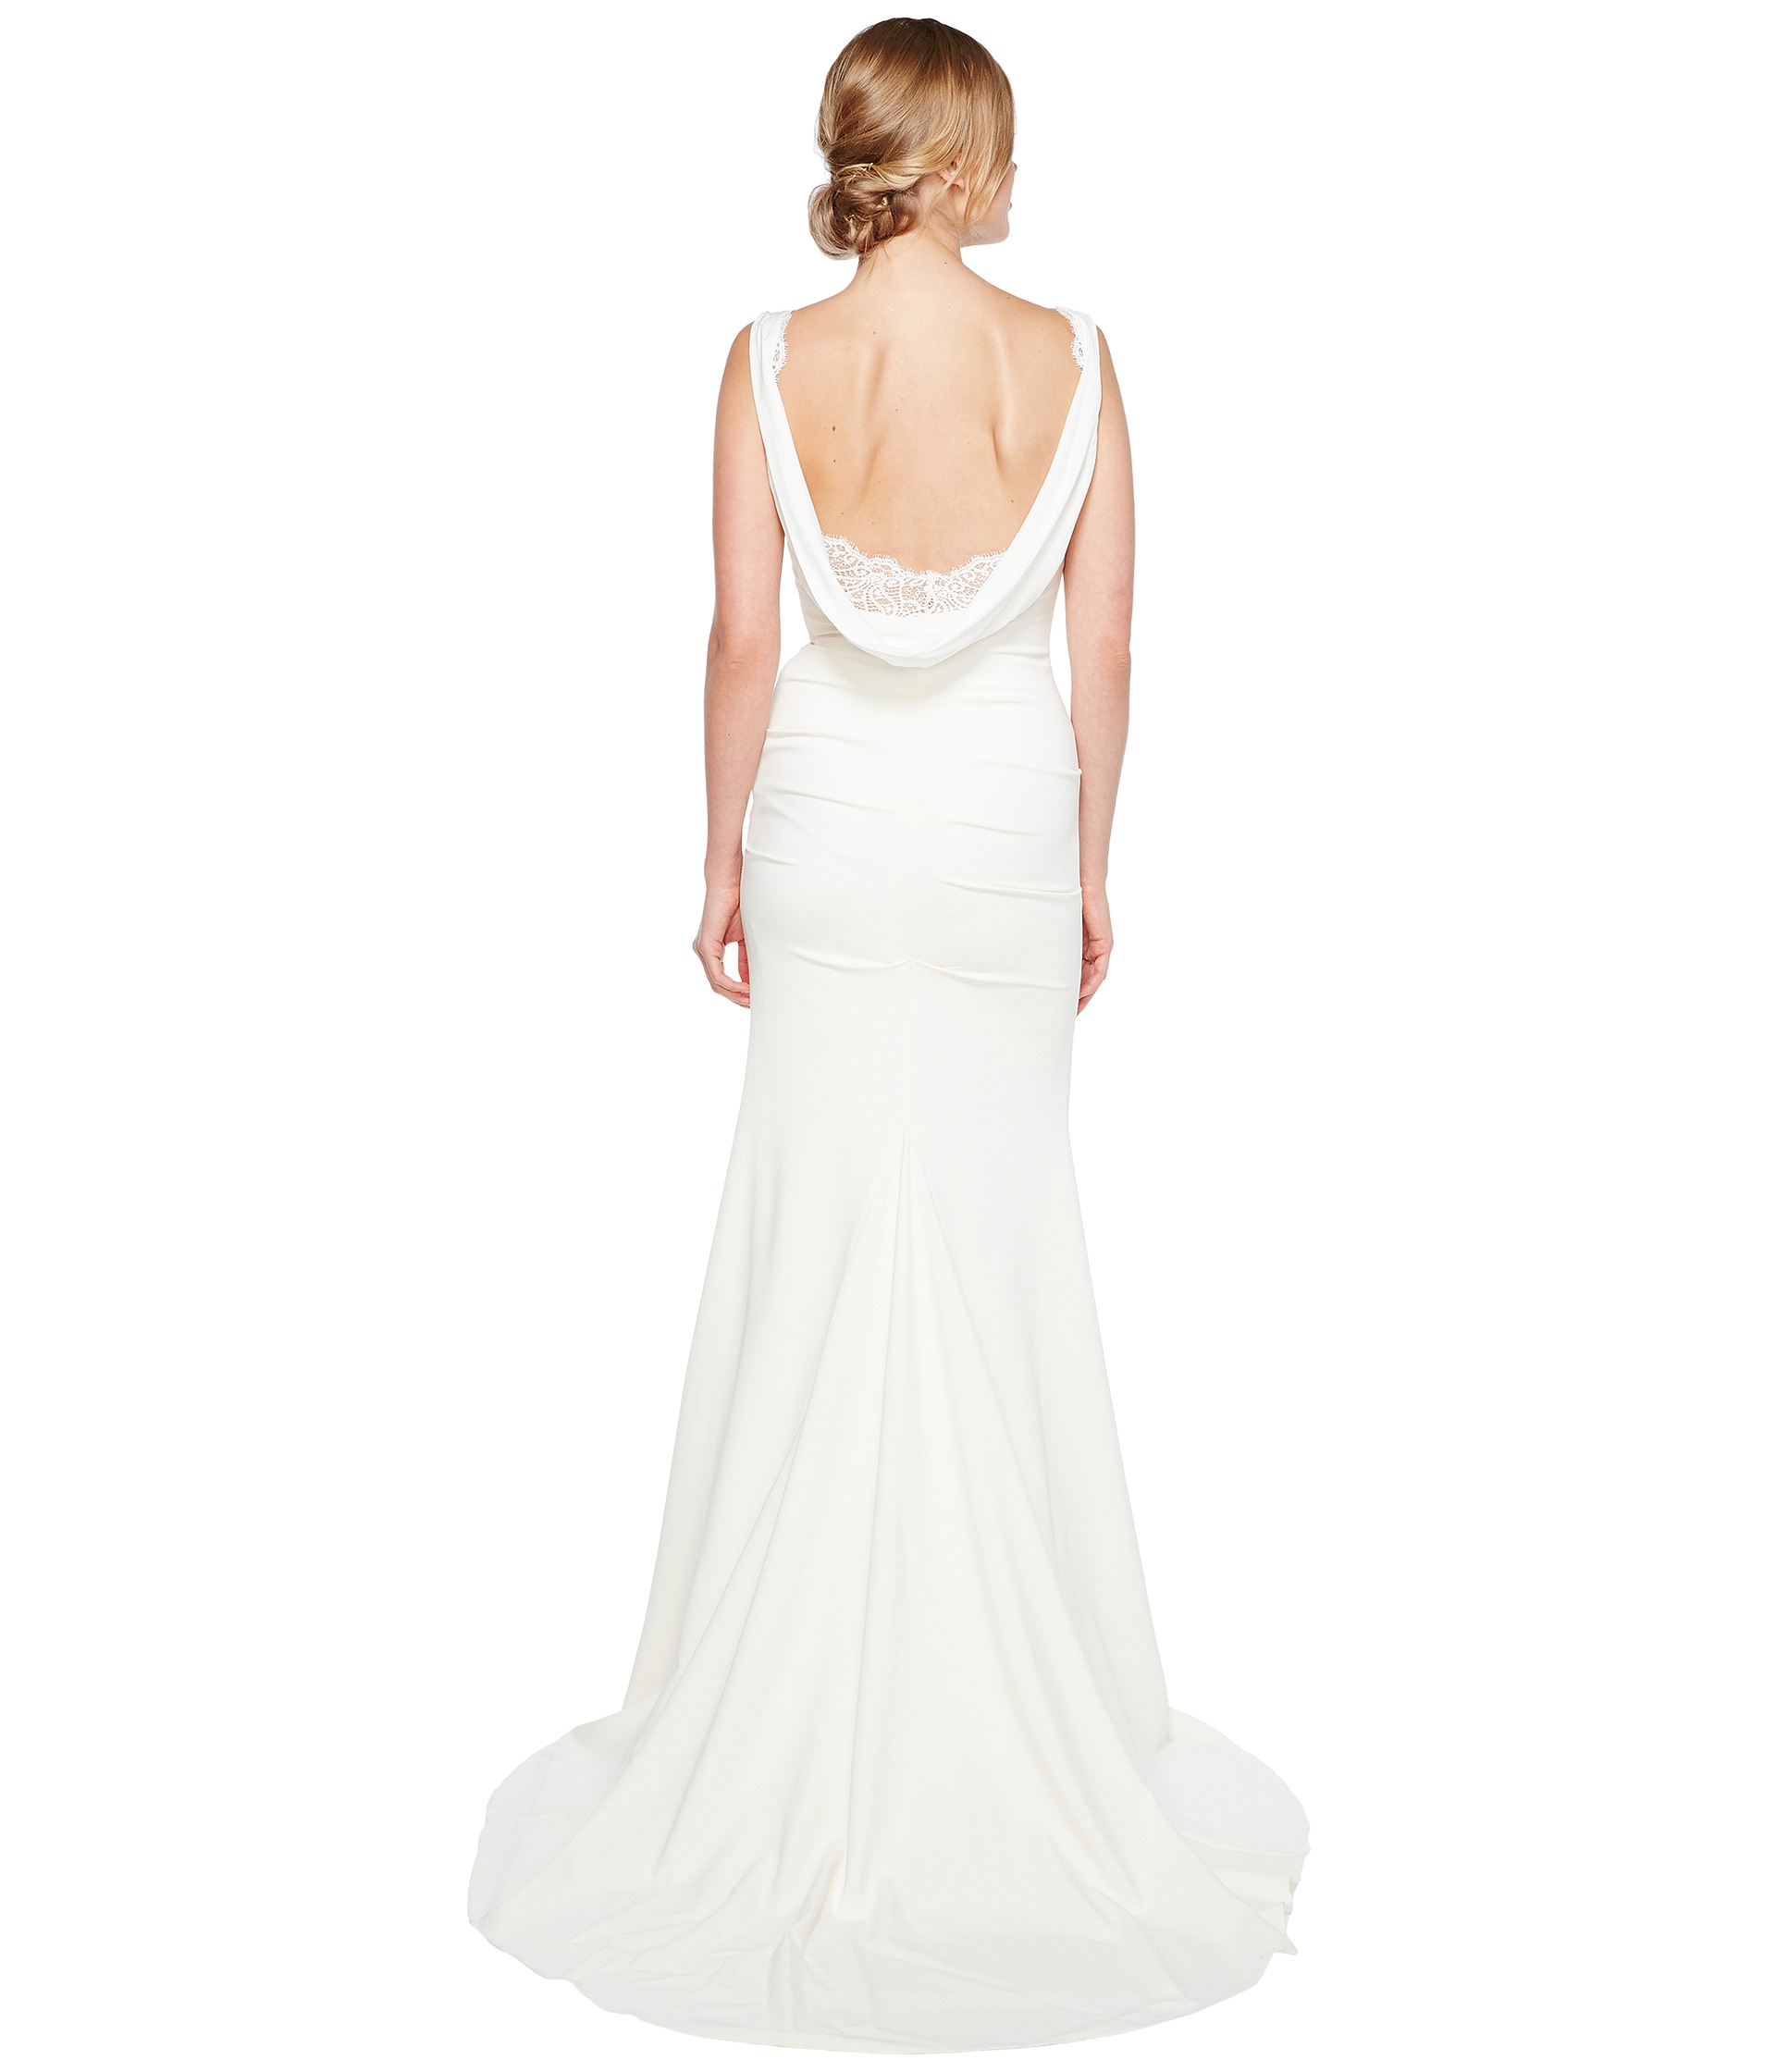 Nicole miller nina bridal gown free shipping for Nicole miller dresses wedding